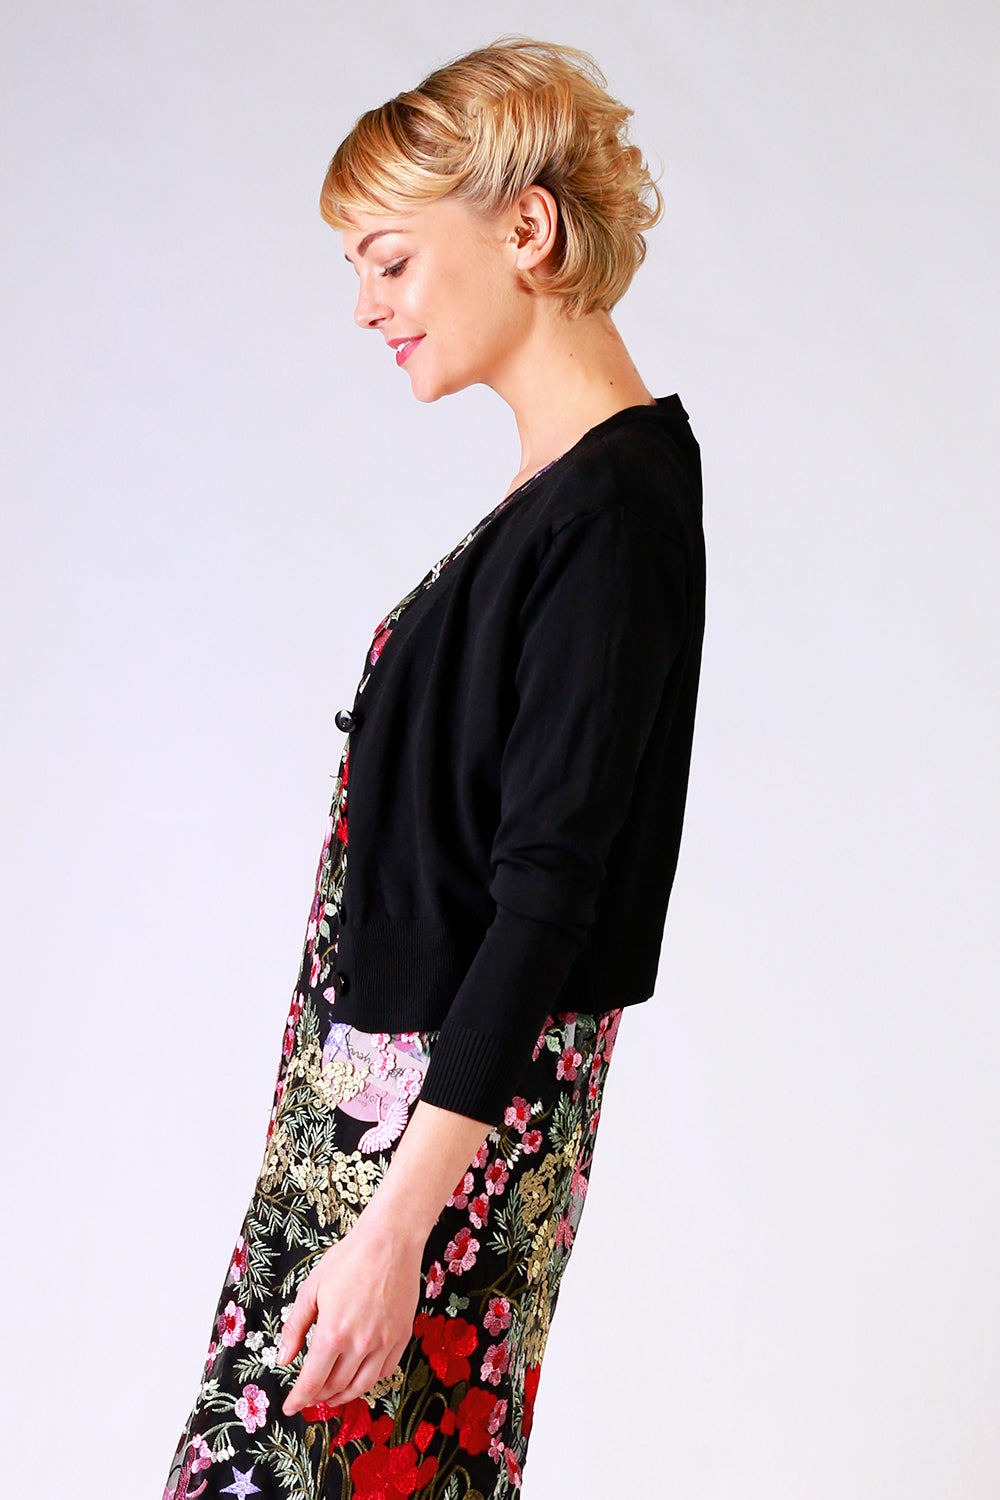 Love Poem Cardigan | Womens Cardigans NZ | Annah Stretton Tops NZ | Designer Fashion NZ